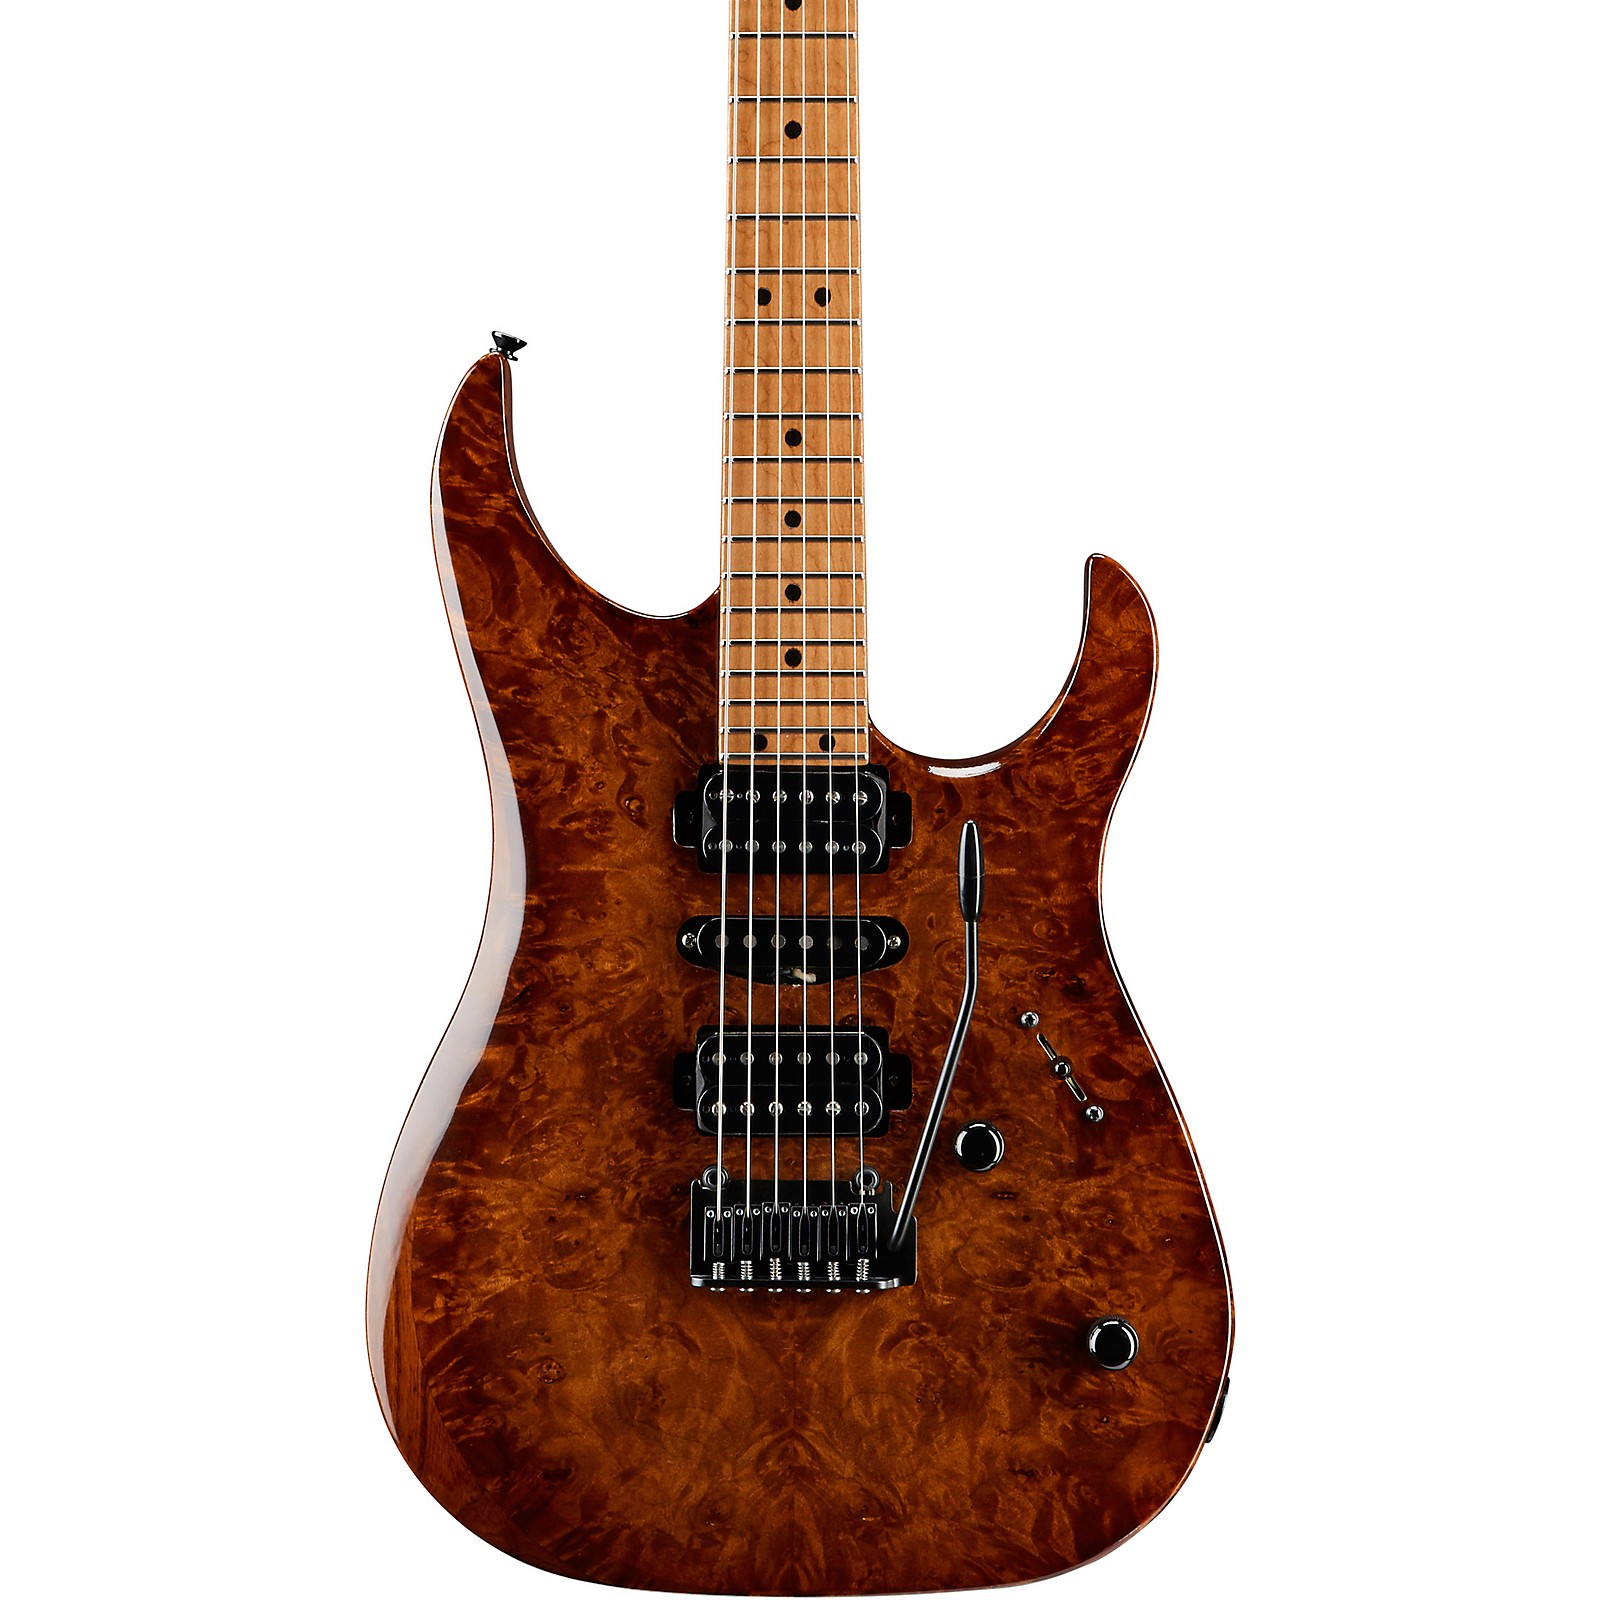 LsL Instruments XT4-DX 24 Fret Exotic HSH Roasted Burl Maple Top Electric Guitar